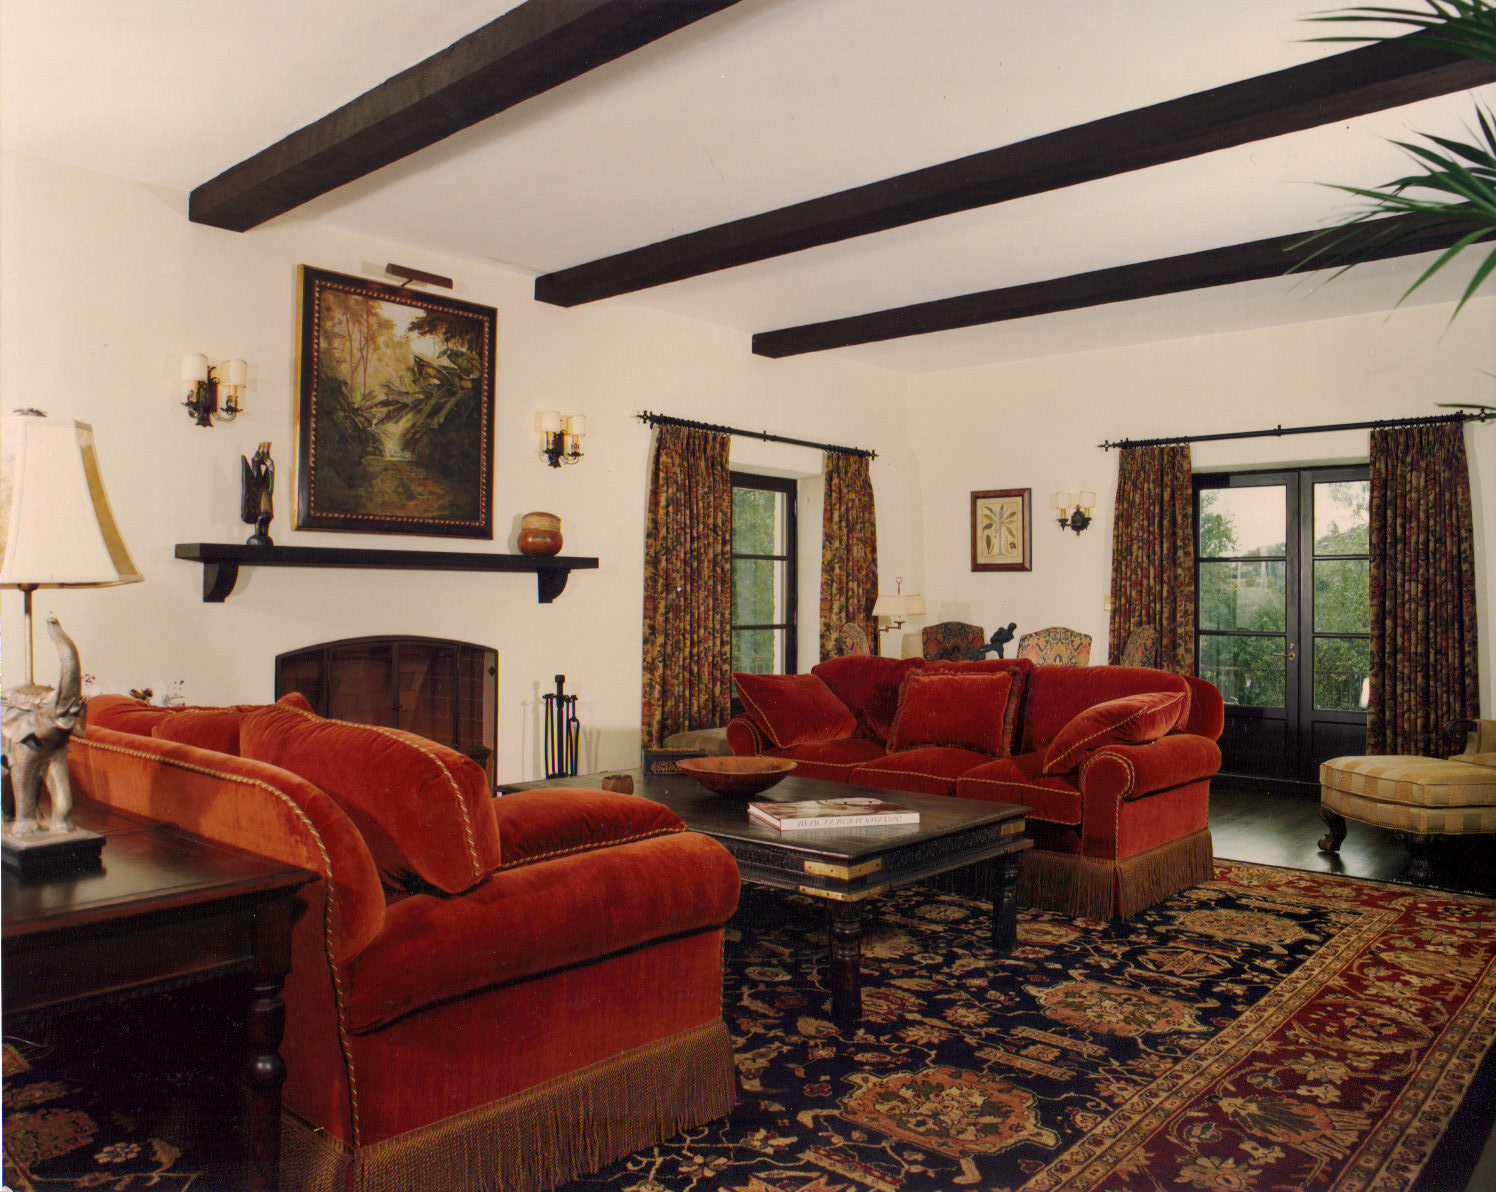 Rustic Mexican Living Room With Carpet Flooring (Image 8 of 10)